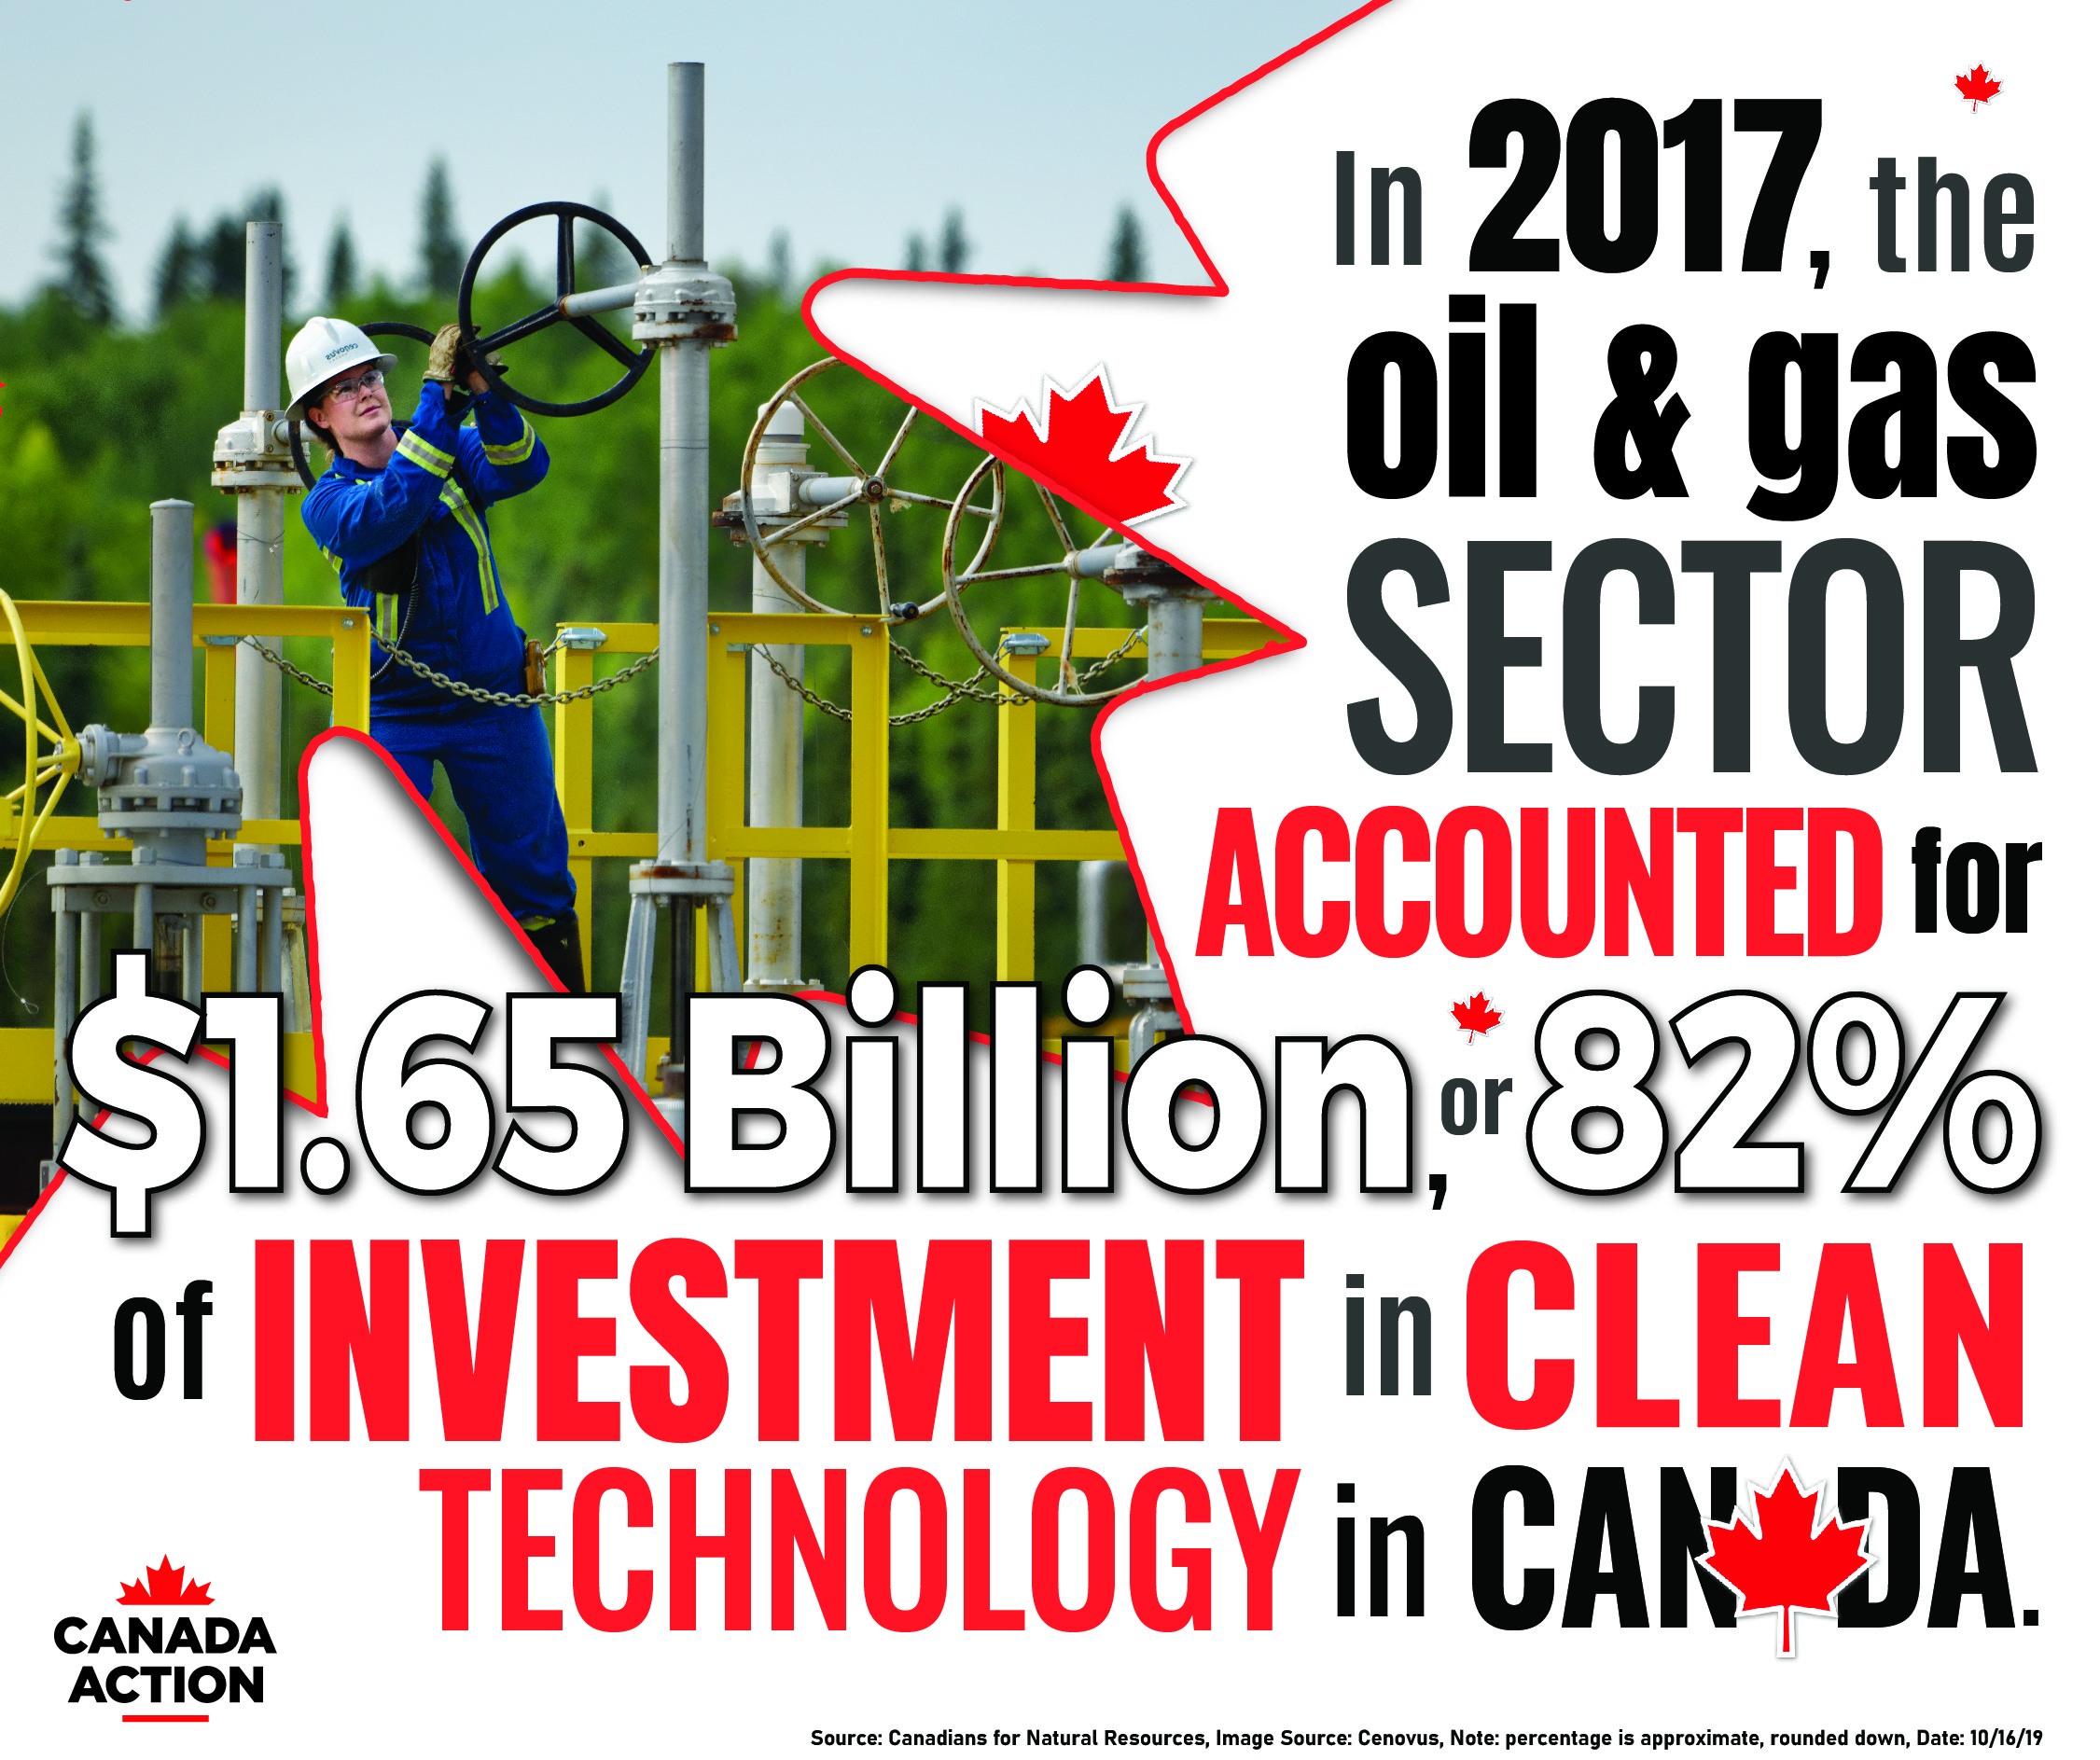 Canada Oil Industry Cleantech Investment 1.65 billion in 2017-02